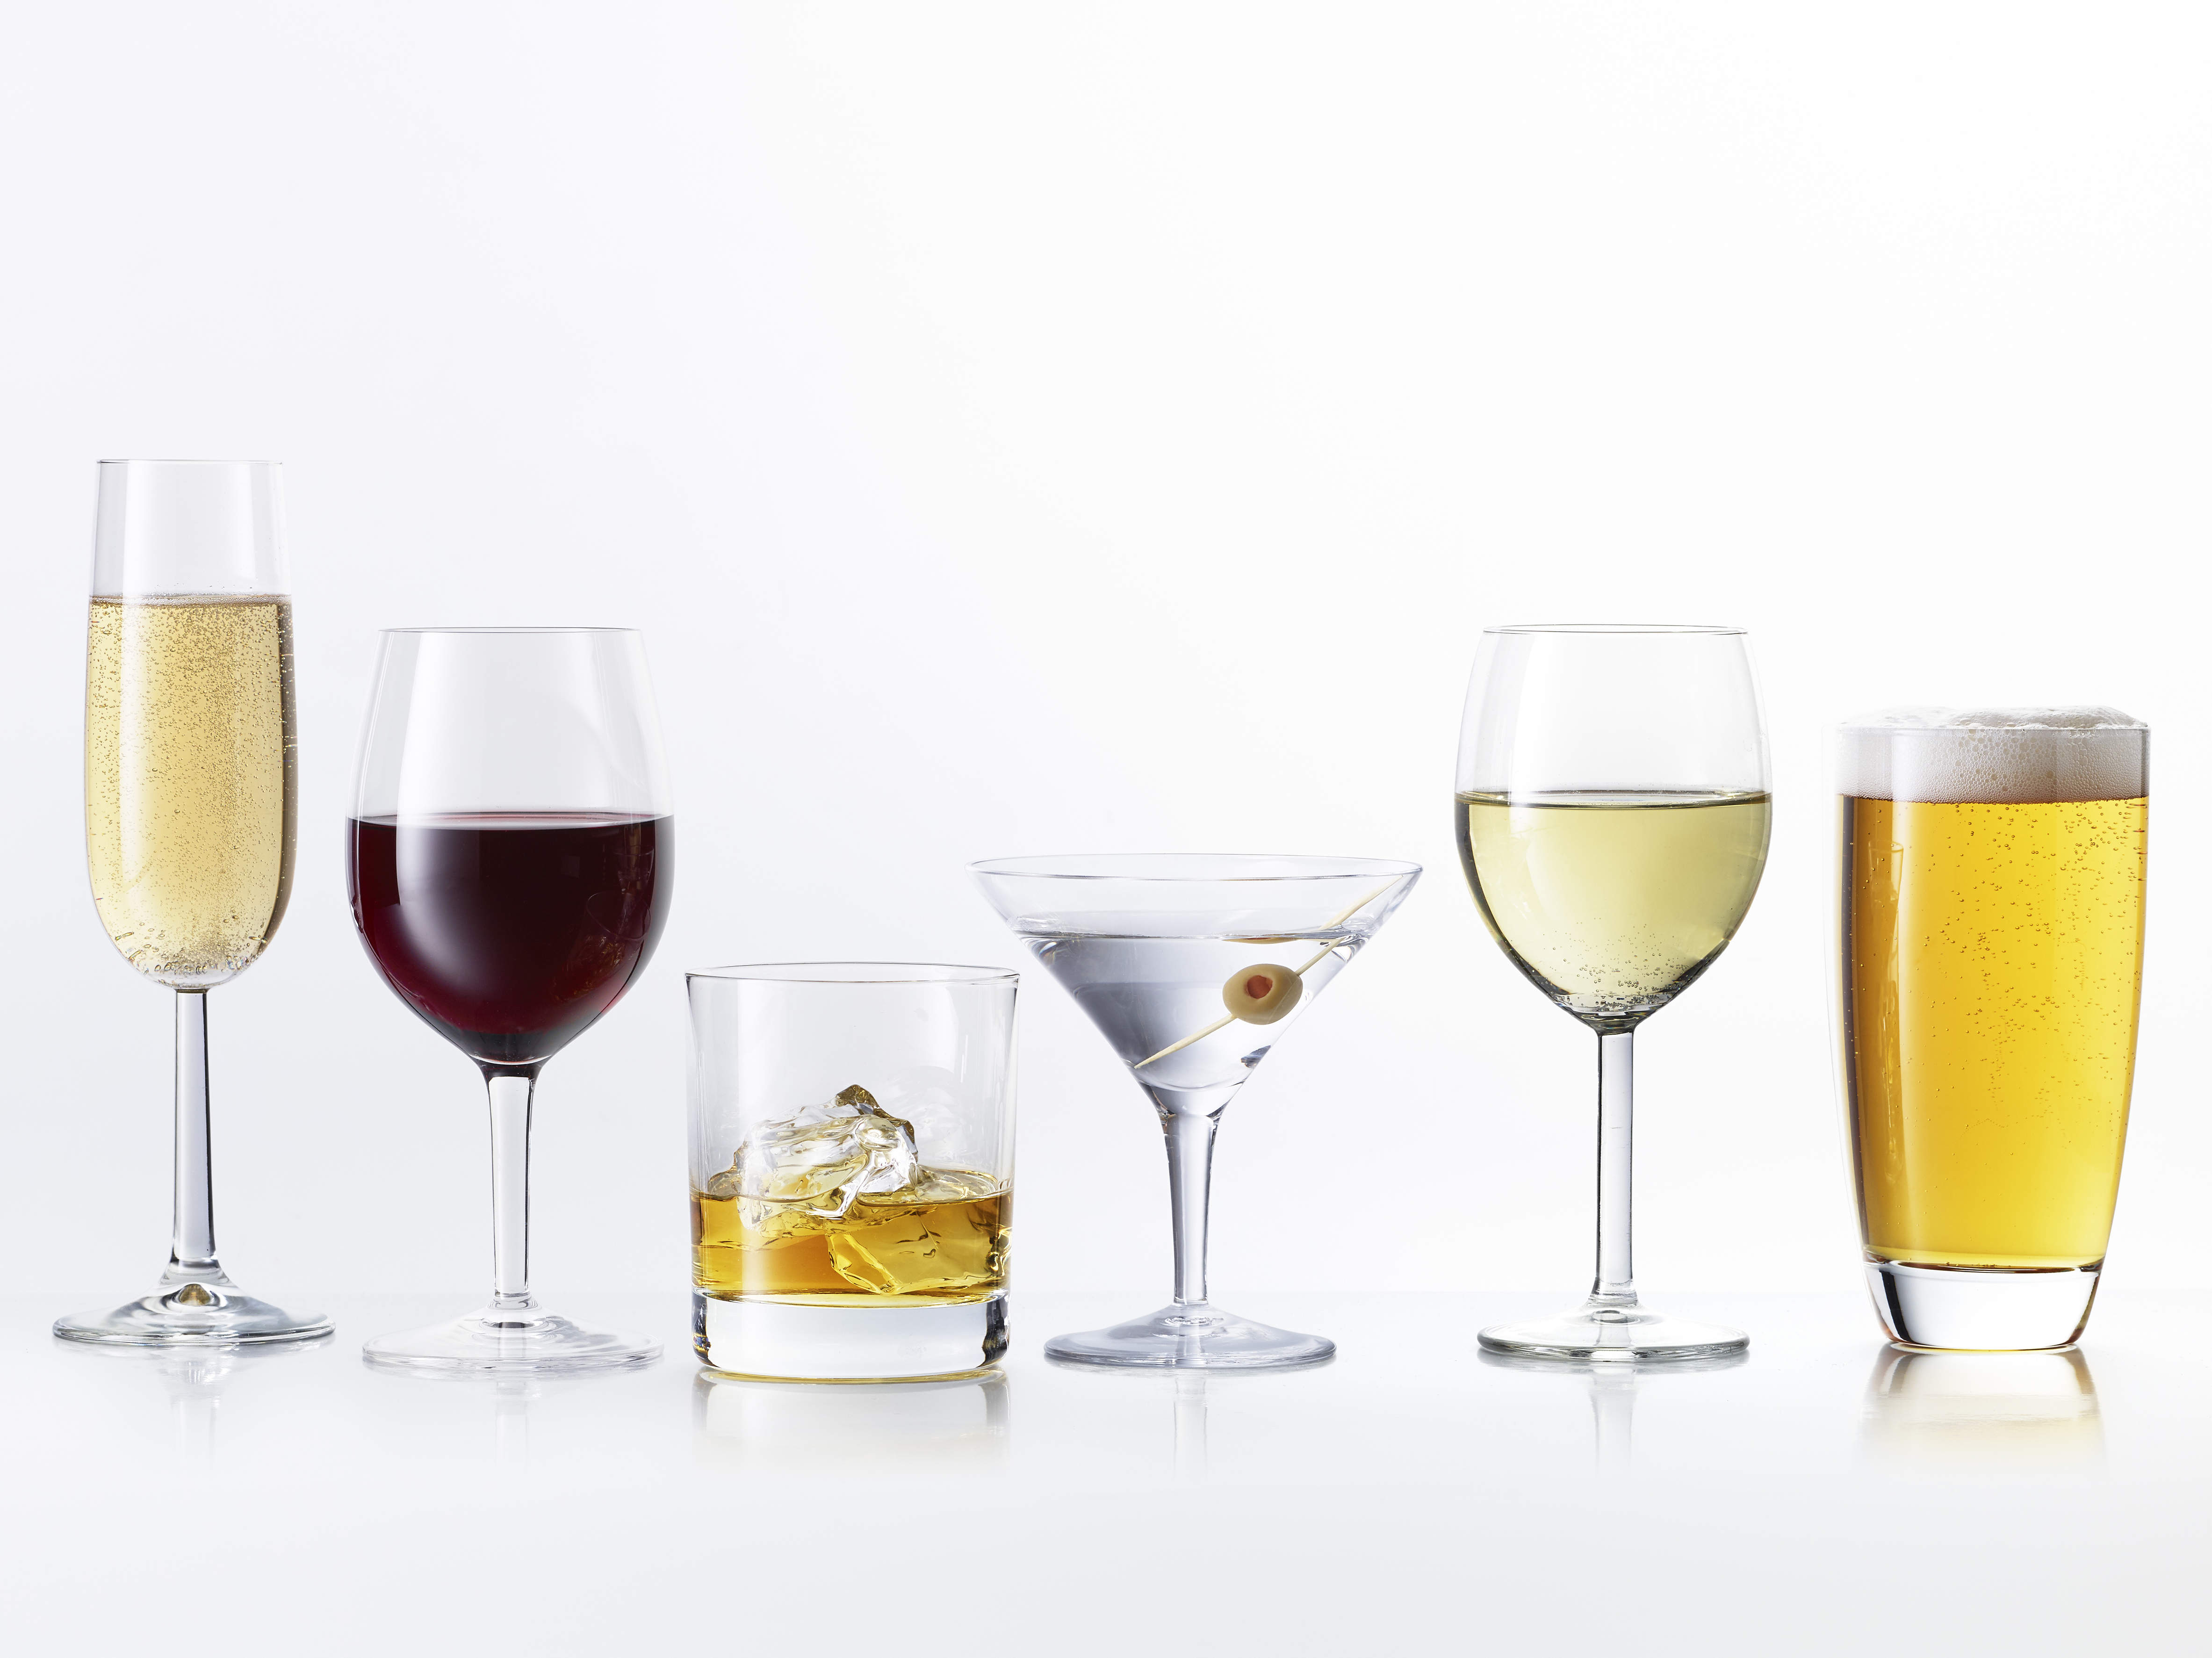 Drinks What's 8 Calorie - Health Alcohol Lowest The Ranked